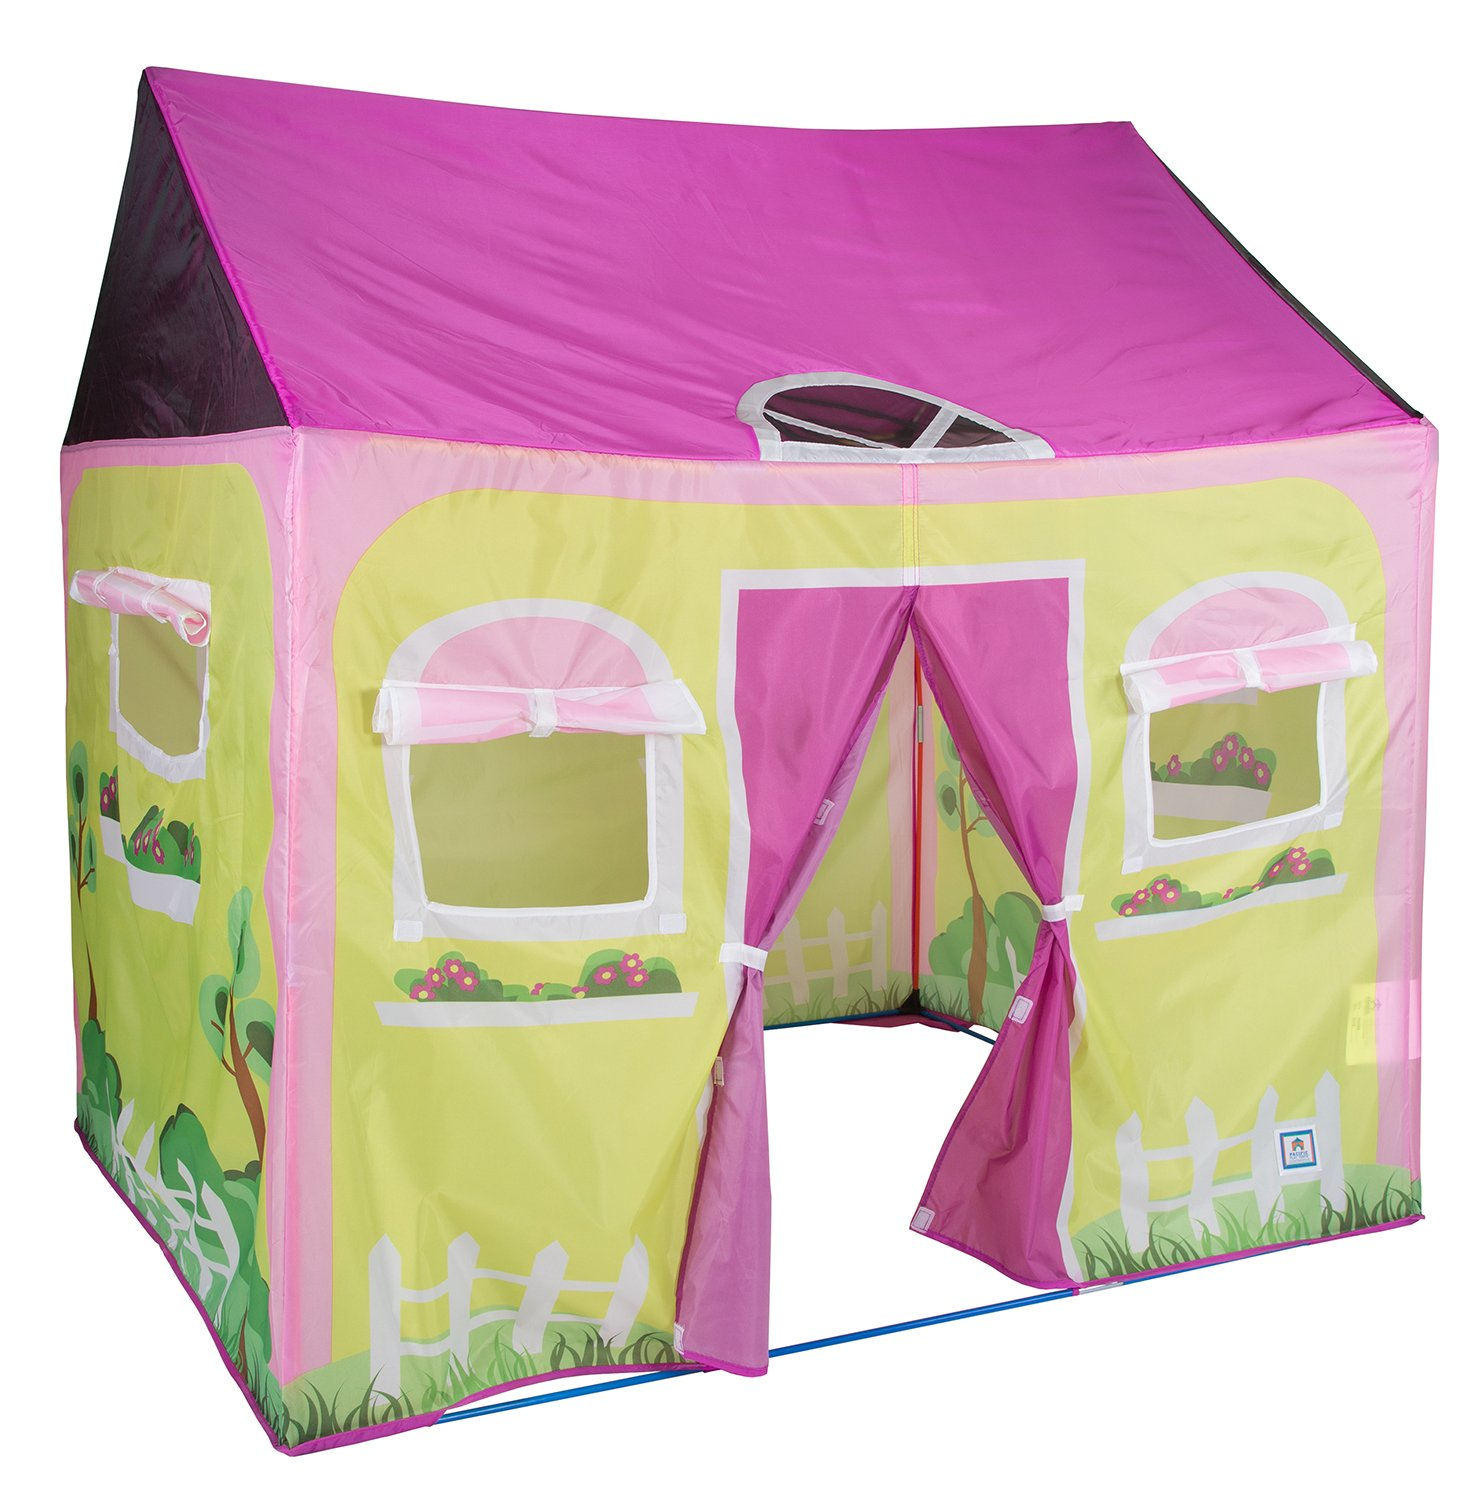 Amazon.com Pacific Play Tents Kids Cottage Play House Tent Playhouse for Indoor / Outdoor Fun - 58  x 48  x 58  Toys u0026 Games  sc 1 st  Amazon.com & Amazon.com: Pacific Play Tents Kids Cottage Play House Tent ...